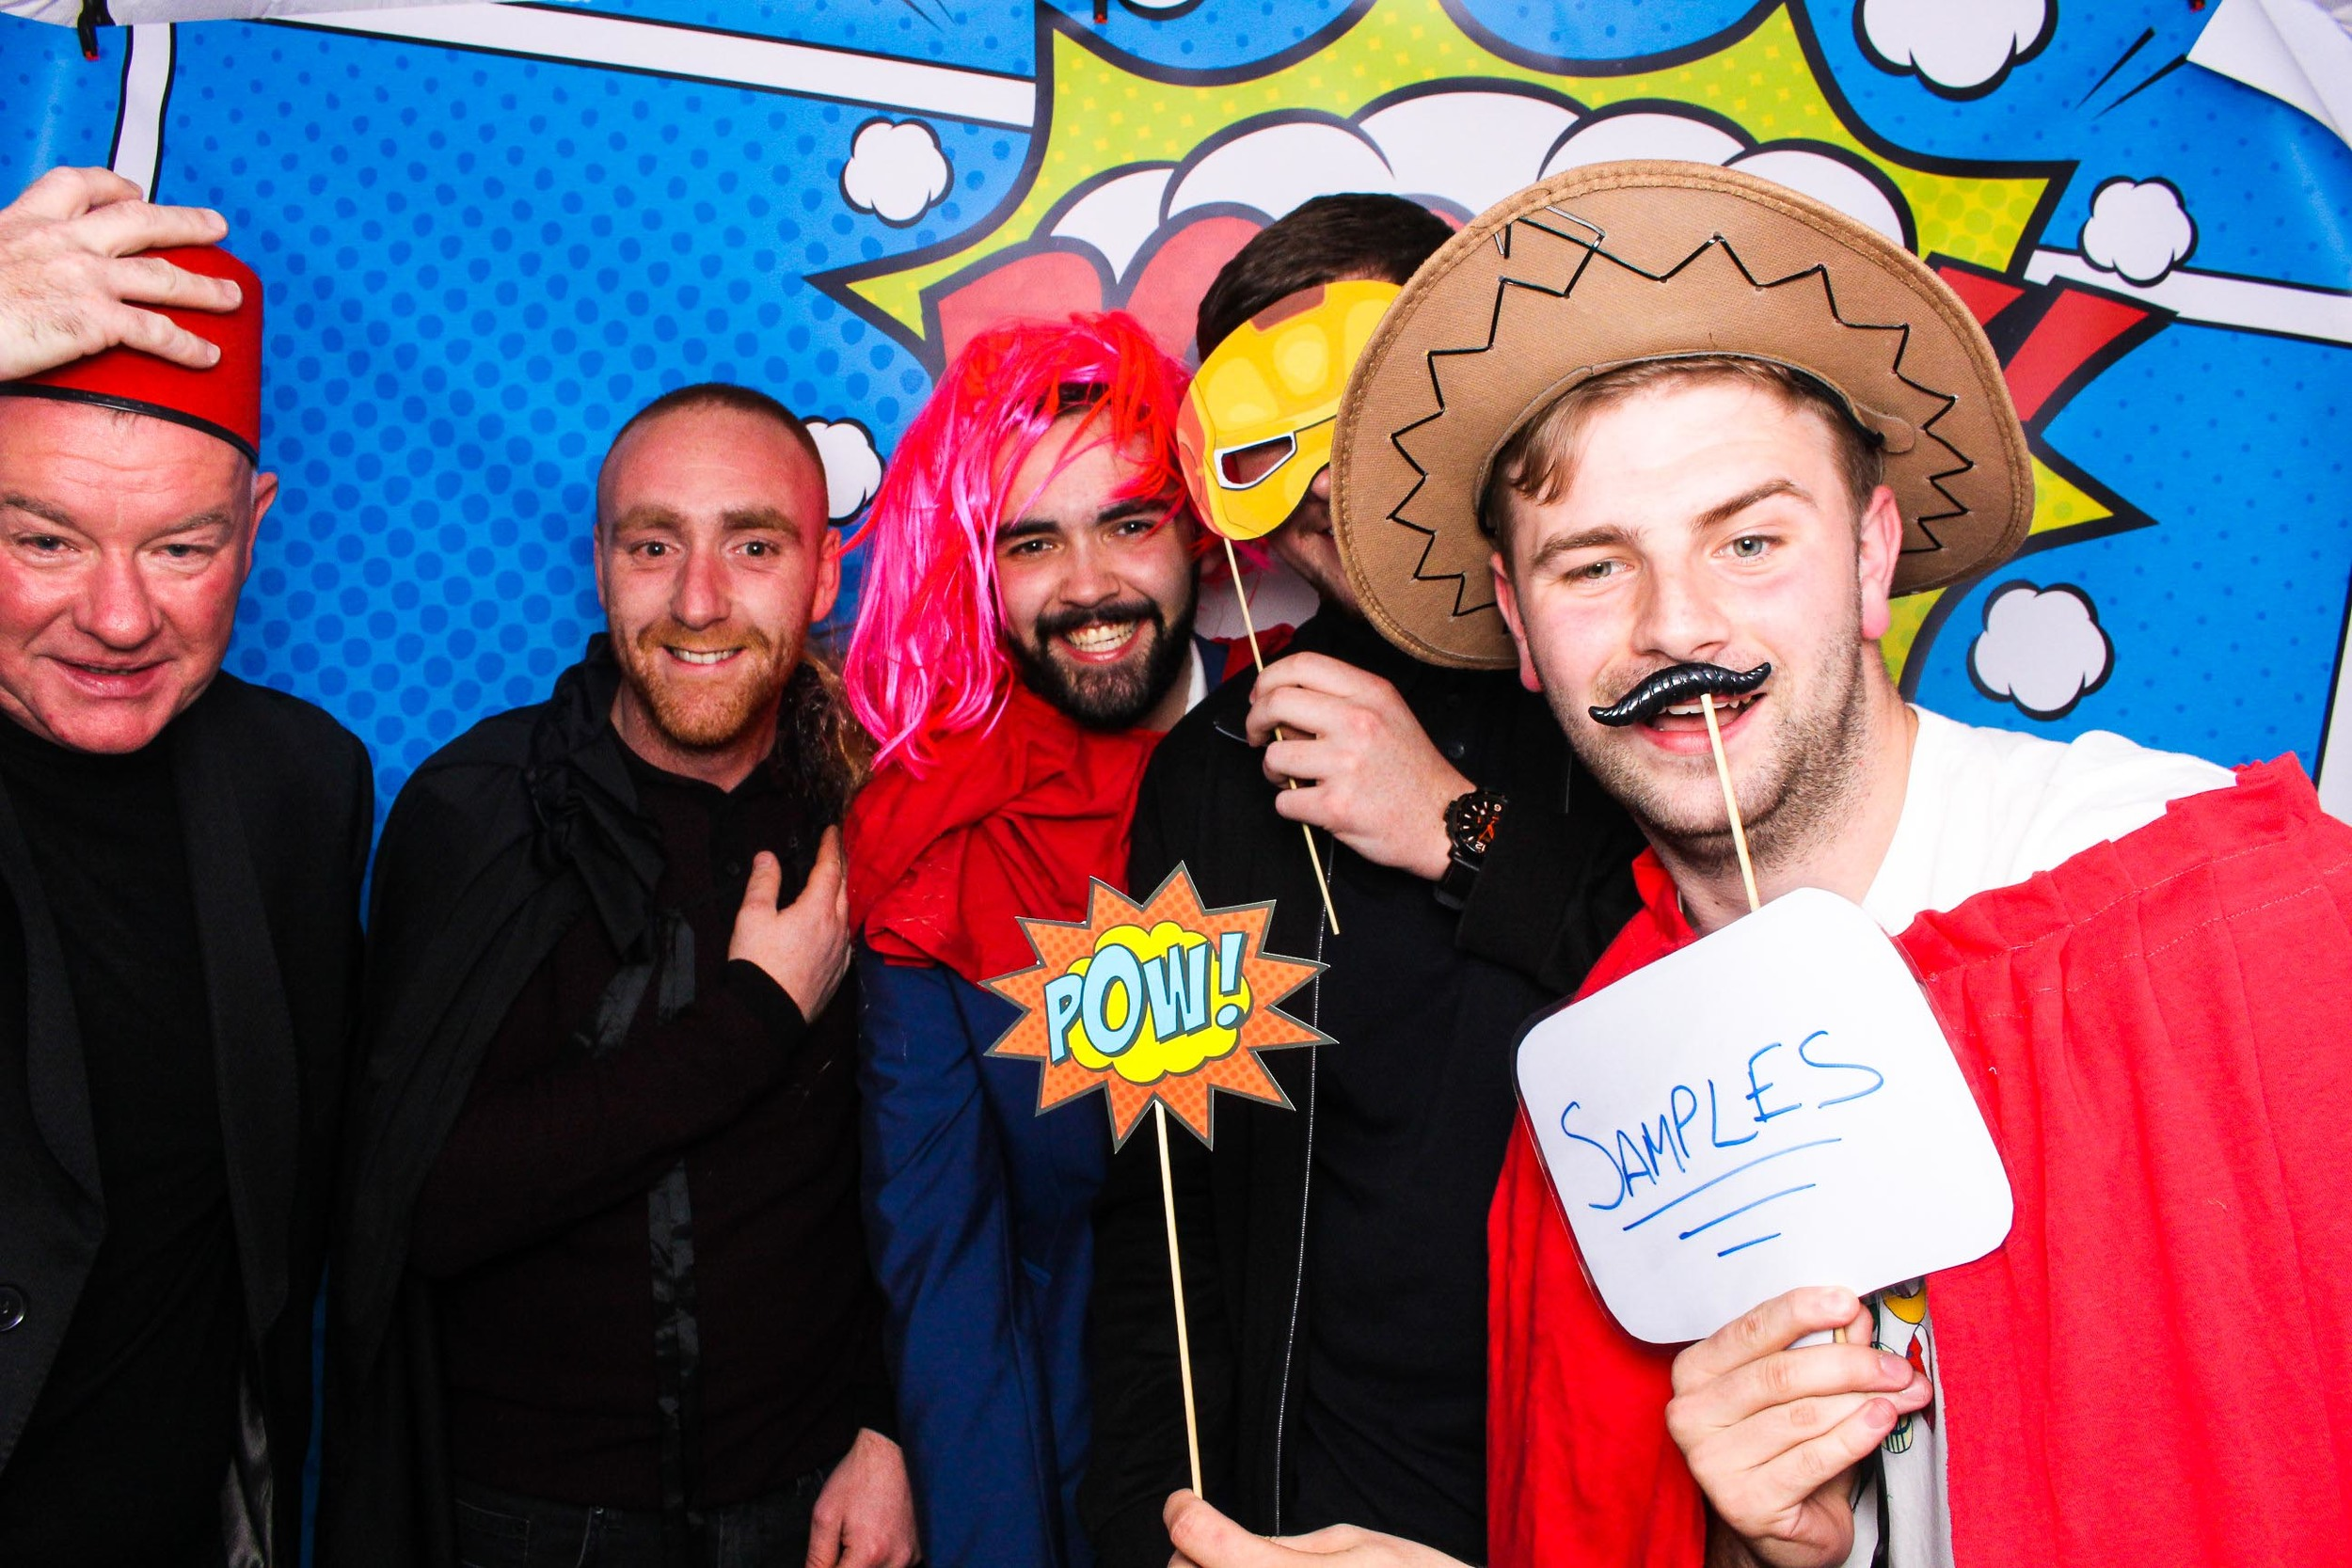 Fotoauto Photo Booth Hire - Shop Direct-120.jpg